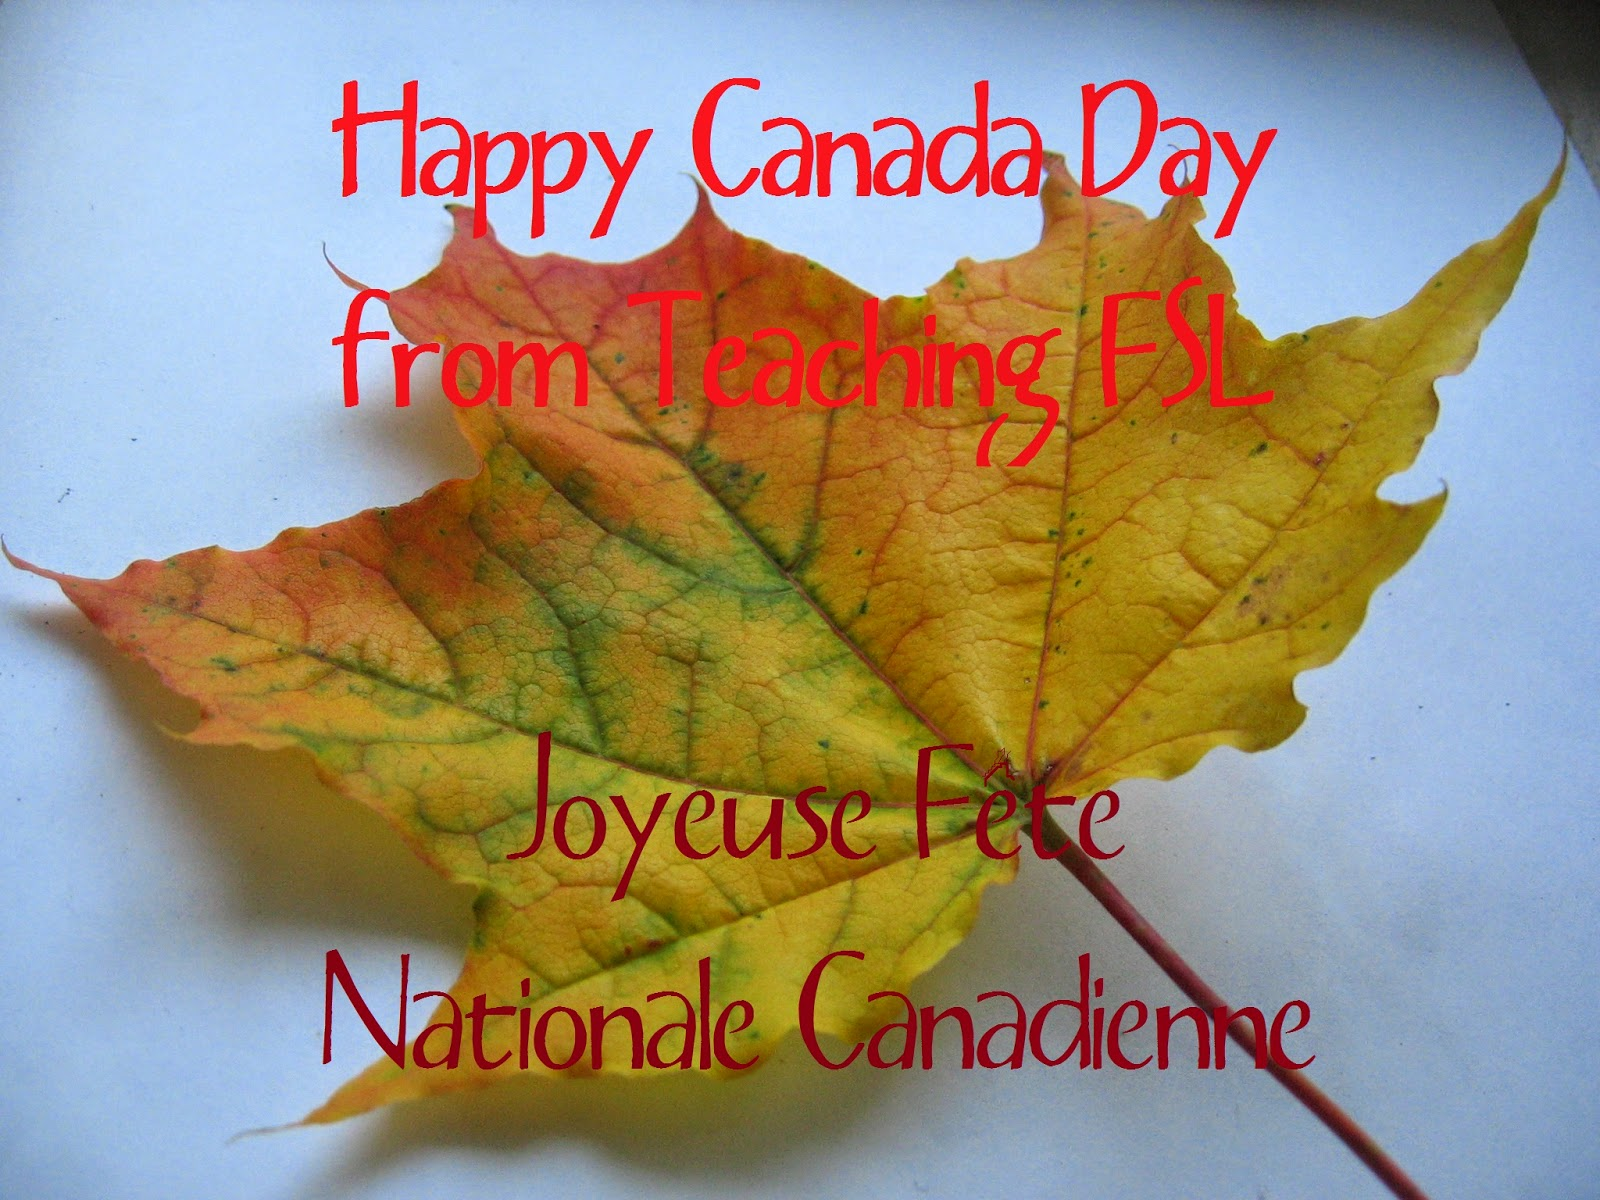 Happy Canada Day from Teaching FSL Joyeuse Fête Nationale du Canada